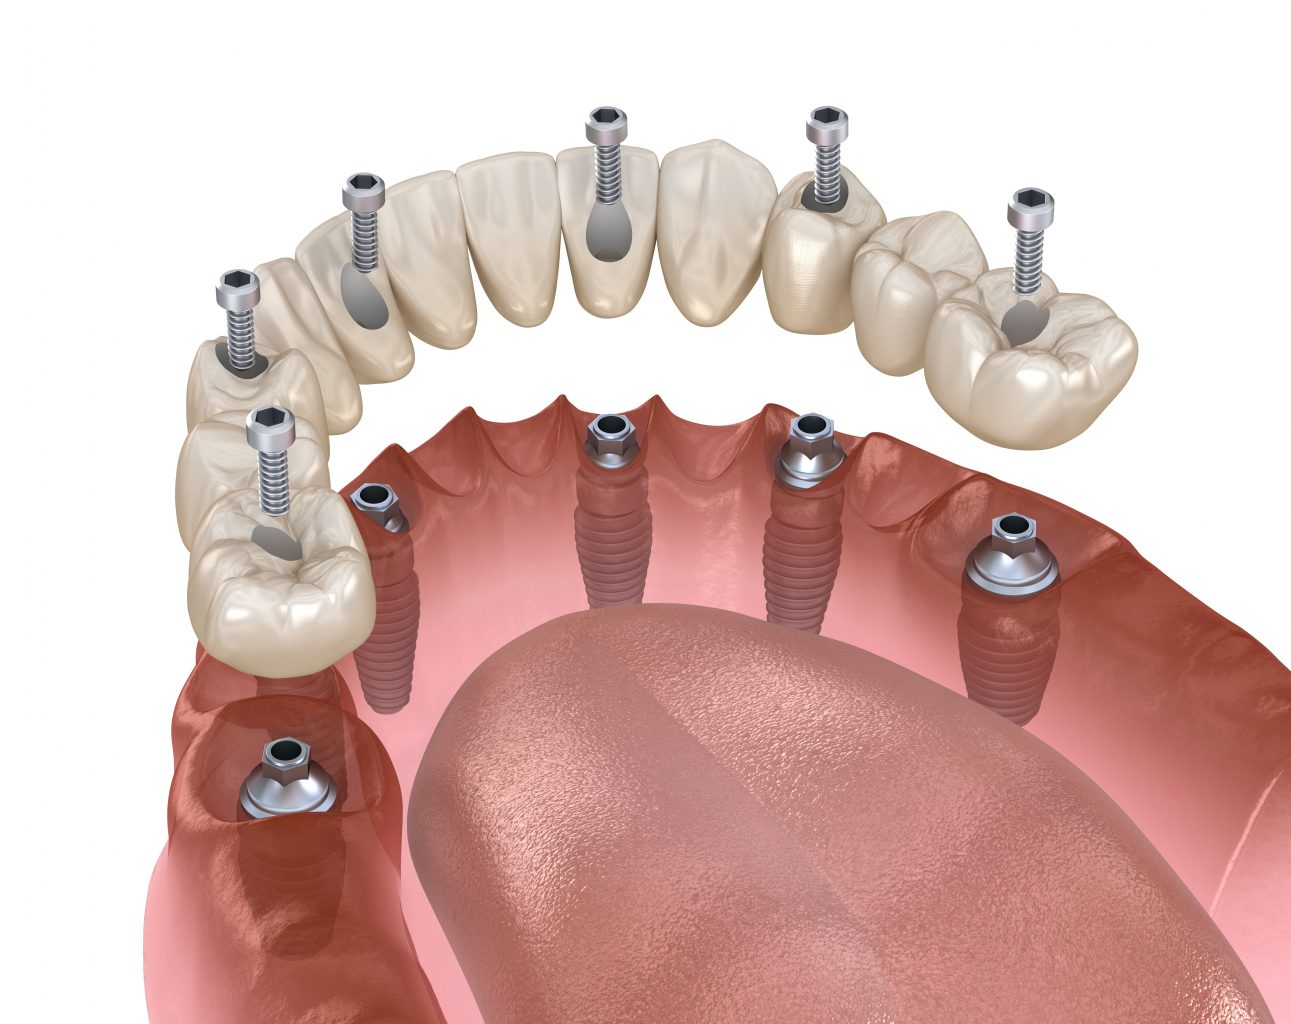 mandibular prosthesis all on 4 system supported by implants, screw fixation. medically accurate 3d illustration of dental concept